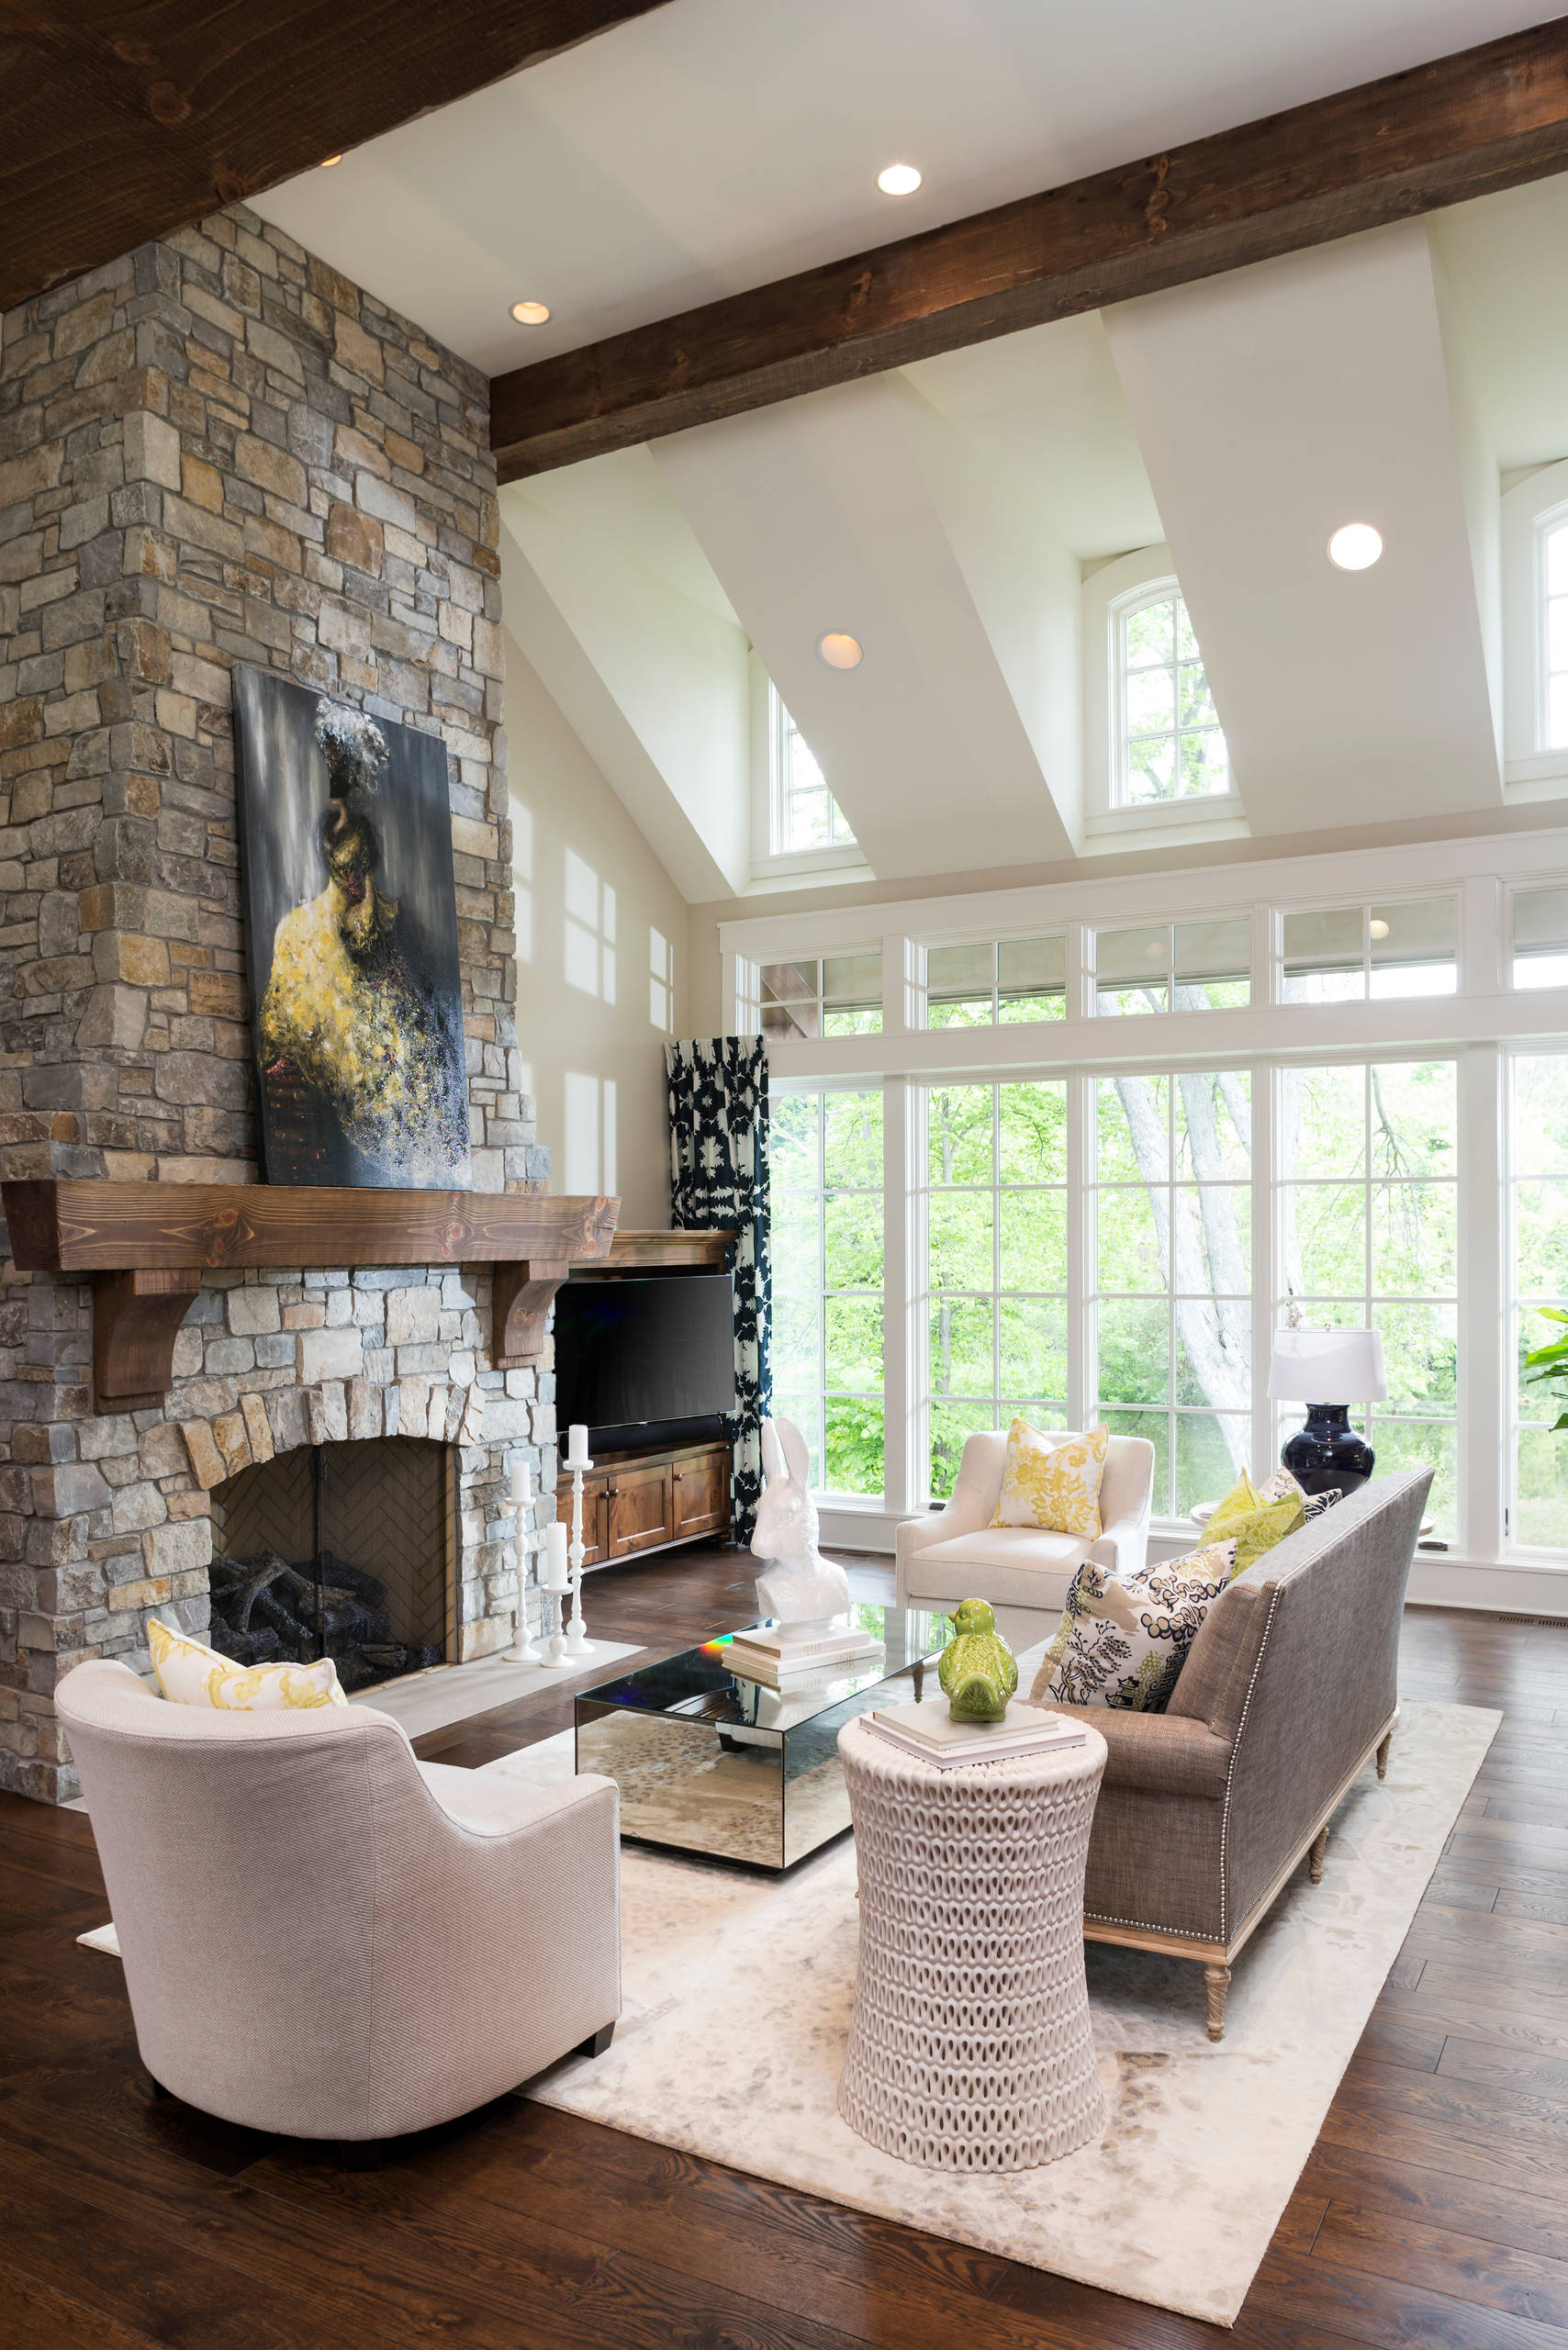 75 Beautiful French Country Living Room Pictures Ideas January 2021 Houzz